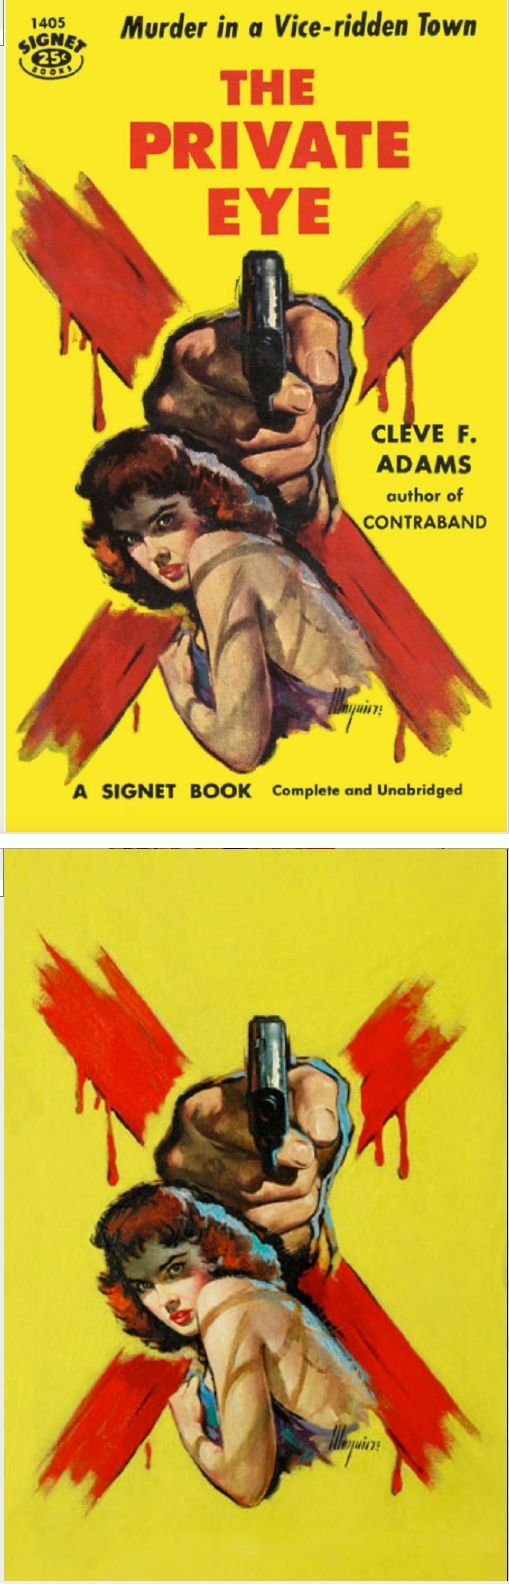 ROBERT MAGUIRE - The Private Eye by Cleve F. Adams - 1957 Signet Books